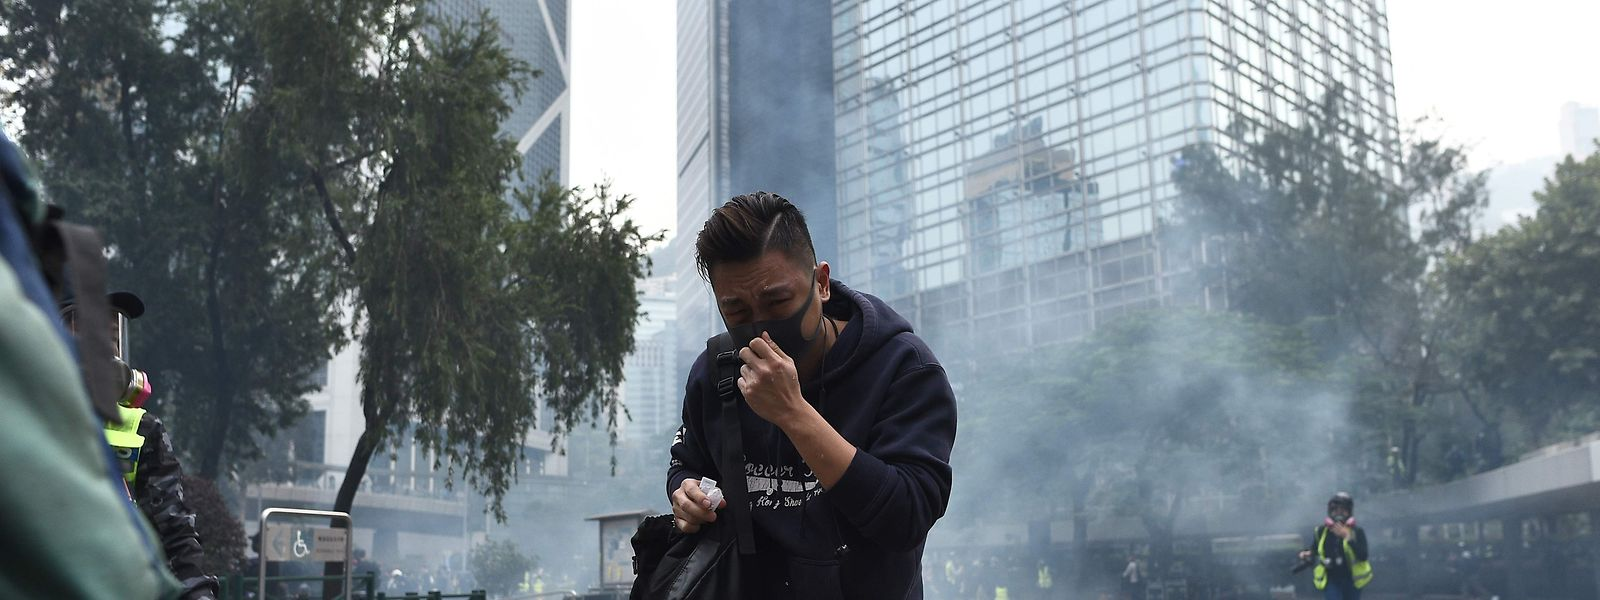 People react from tear gas fired by police to disperse the crowd gathered for the 'universal siege on communists' rally at Chater Garden in Hong Kong on January 19, 2020. - Violence returned to Hong Kong's streets on January 19 with police firing tear gas to disperse crowds after a group of officers were beaten bloody by pro-democracy protesters. Thousands of people had gathered in the city's commercial district for a sanctioned rally calling for greater democratic freedoms and police accountability, the latest in seven months of protests that have upended the financial hub. (Photo by Philip FONG / AFP)